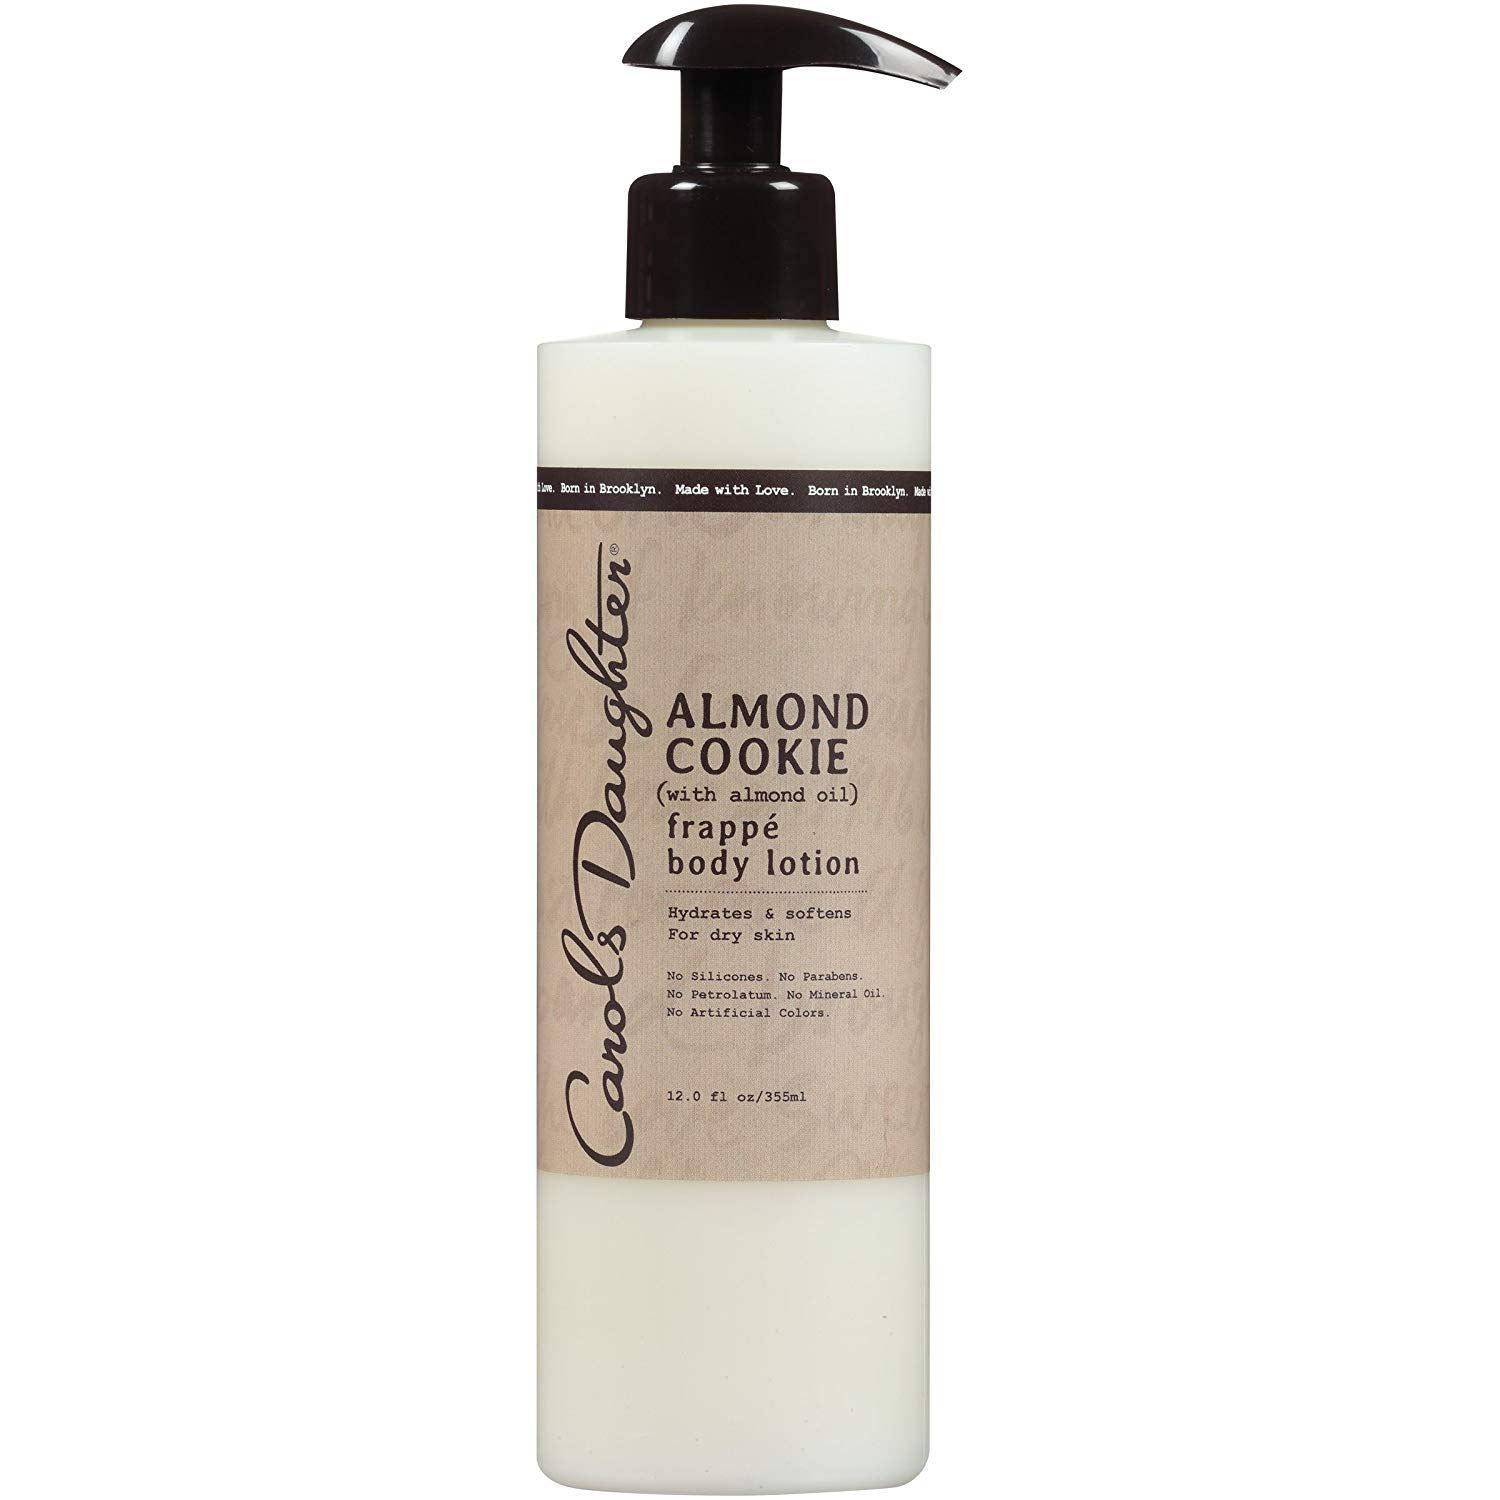 Almond Cookie Frappe Body Lotion